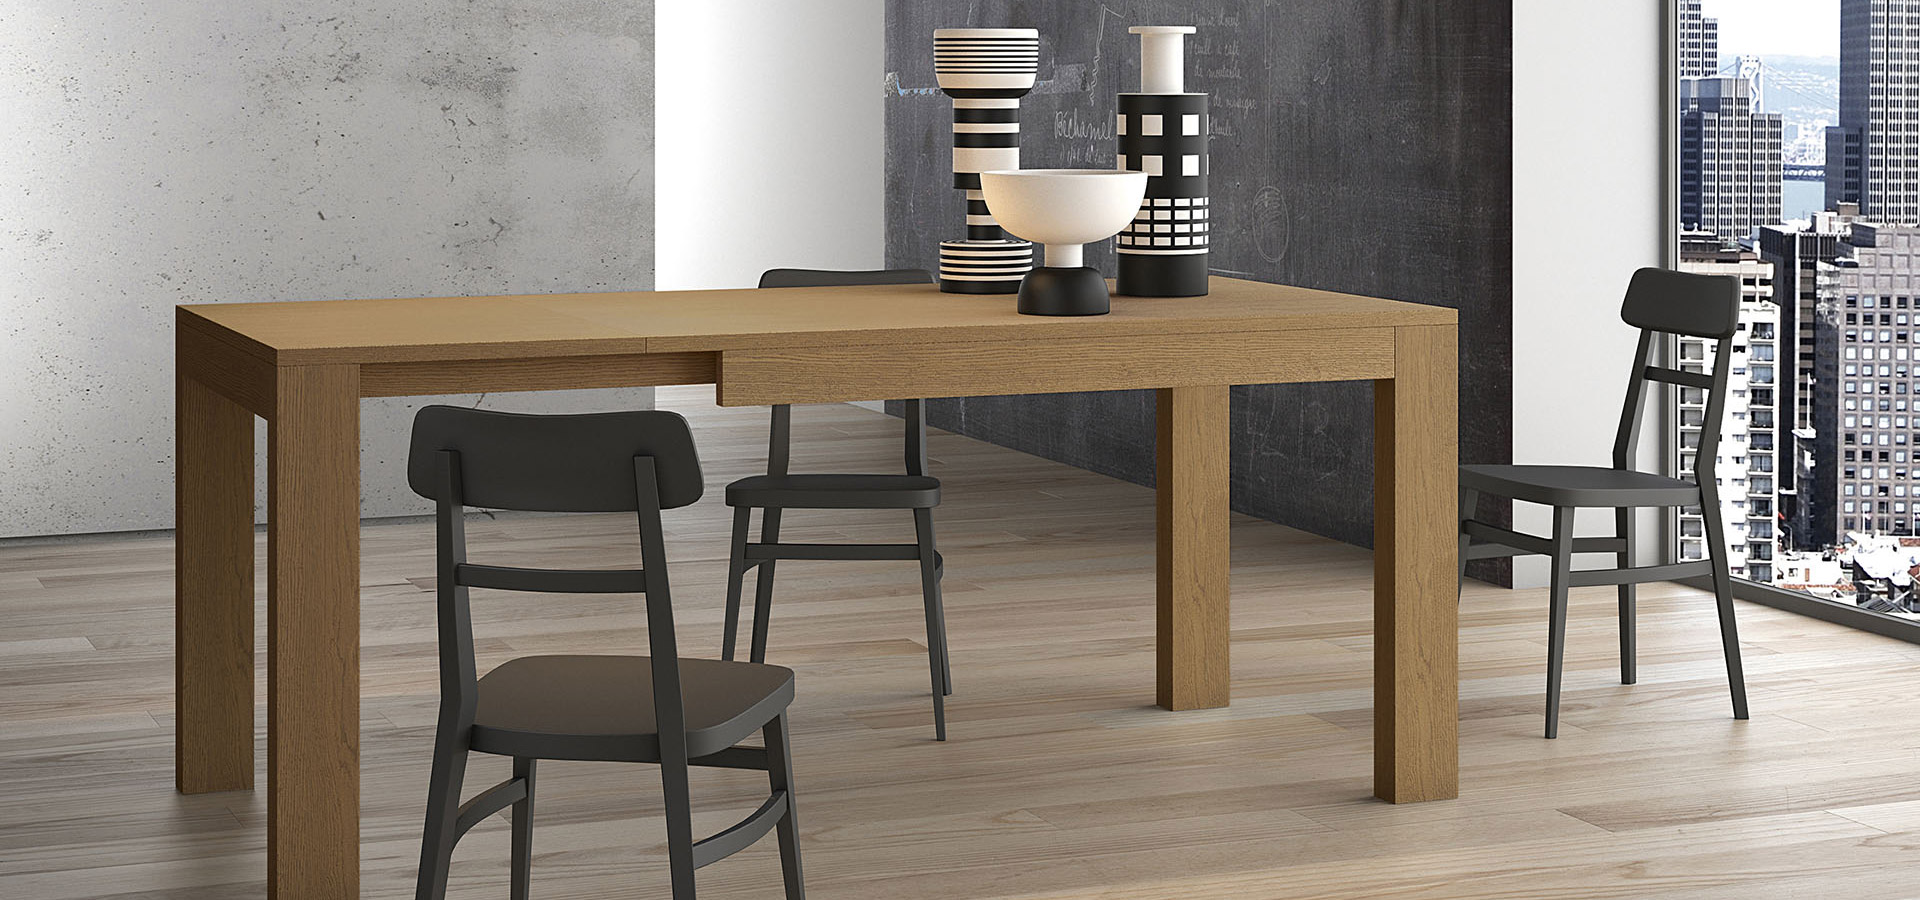 Ares tavolo dining table arredo3 for Tavolo e sedie moderne